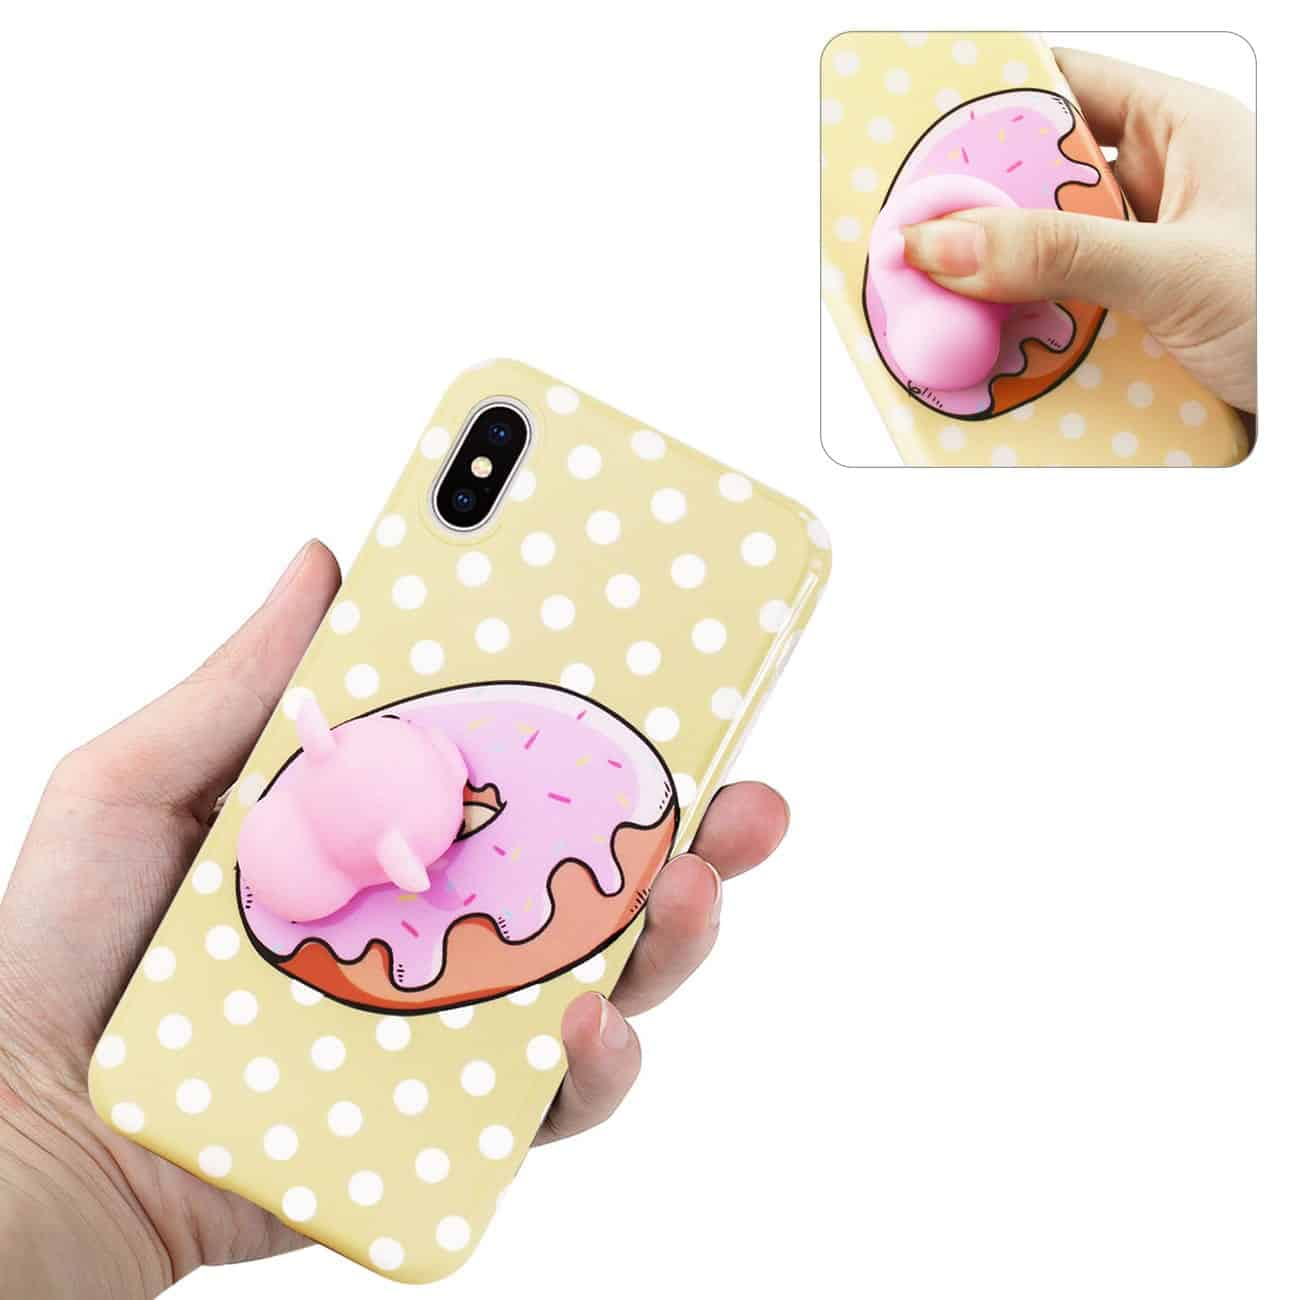 IPHONE X TPU DESIGN CASE WITH  3D SOFT SILICONE POKE SQUISHY PIGGY